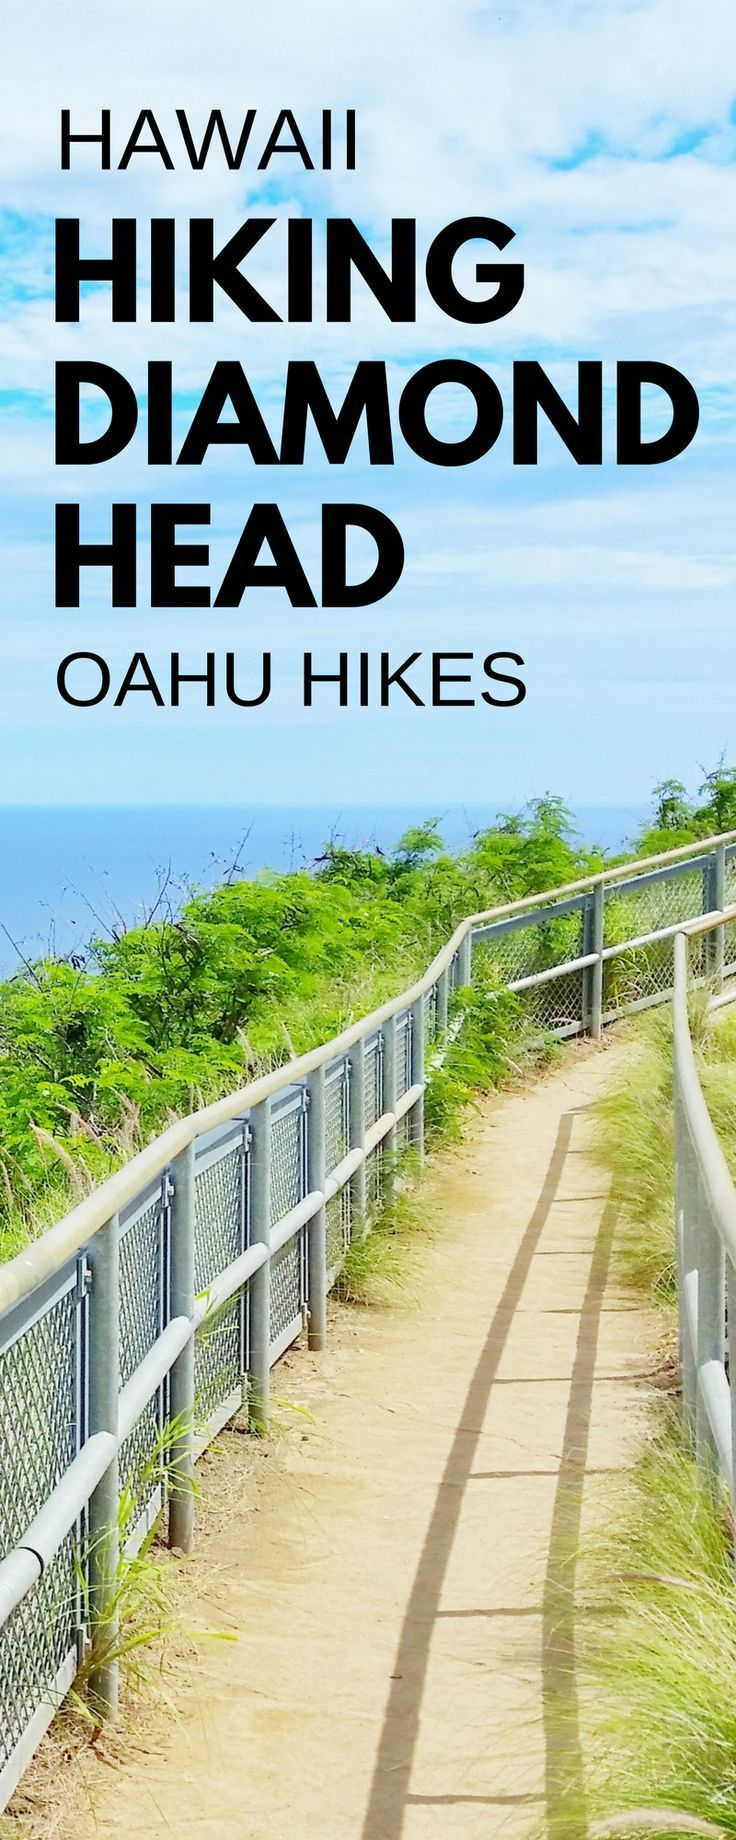 Best Oahu hikes with some of the best views: Diamond Head Hike! For US hiking tr... Best Oahu hikes with some of the best views: Diamond Head Hike! For US hiking tr...